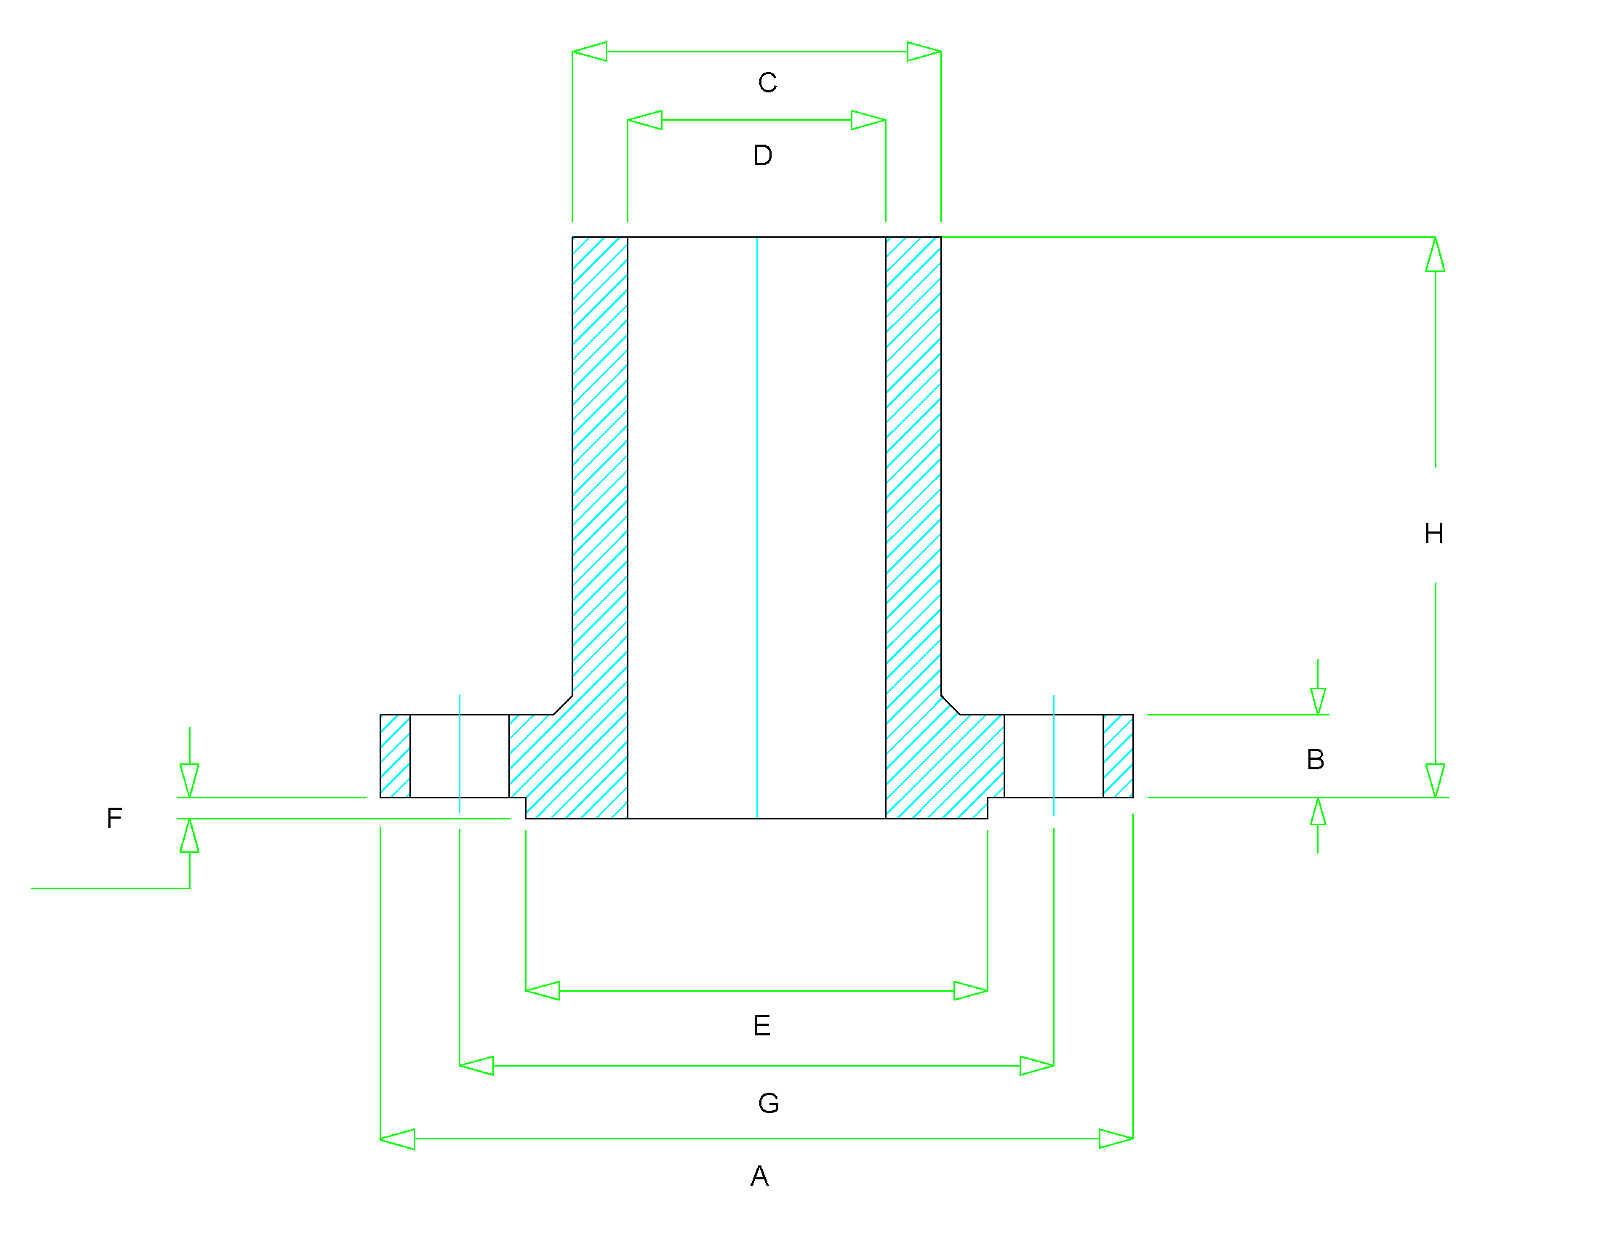 Long Weld Neck Flange Dimensions Class 150 To 2500 Diagram For Welding